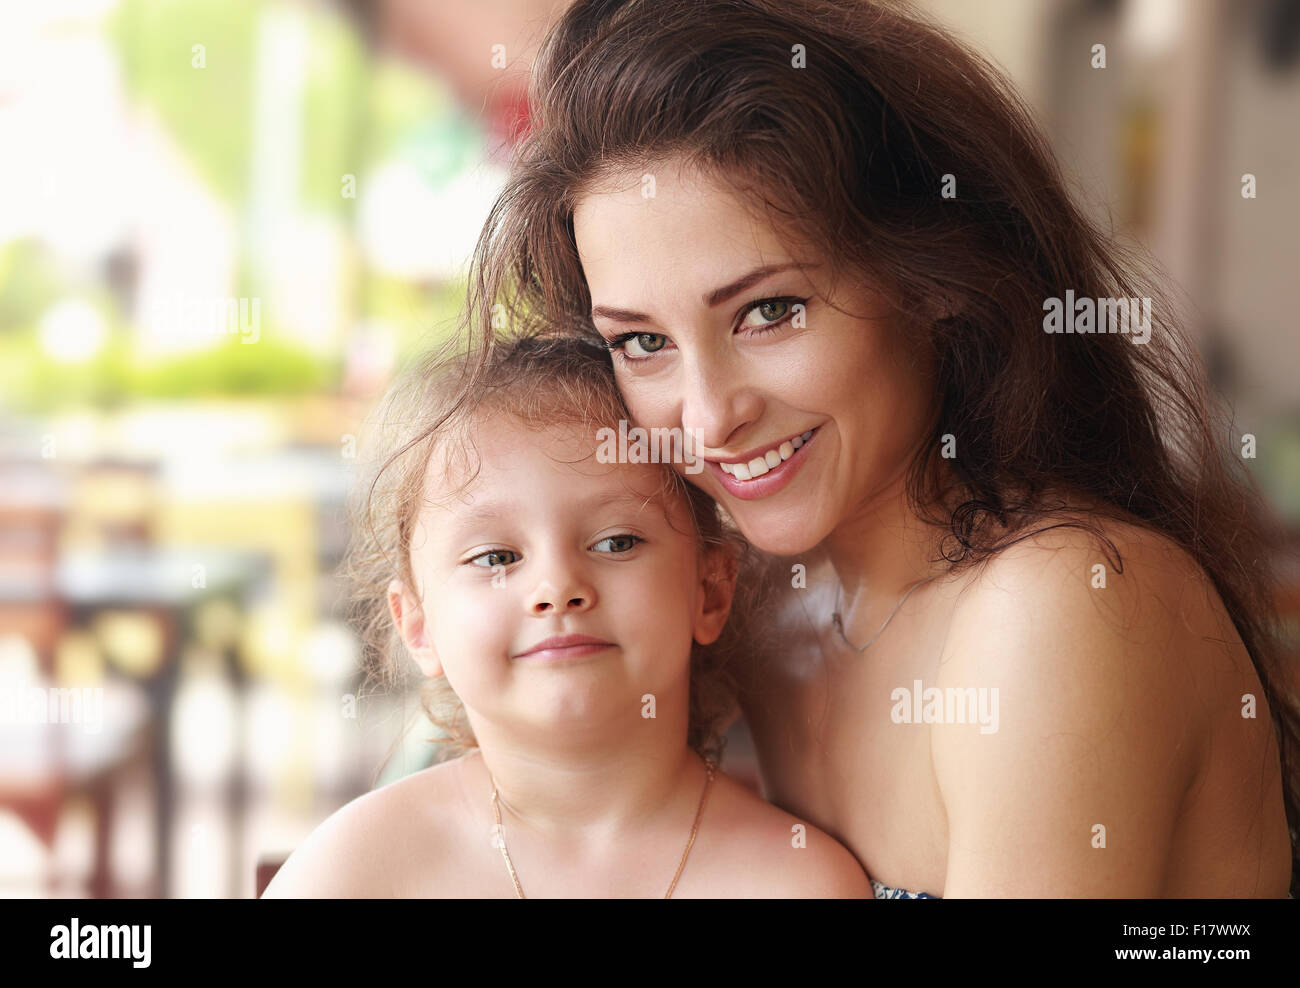 Happy smiling mother cuddling her cute daughter in restaurant. Closeup family portrait - Stock Image